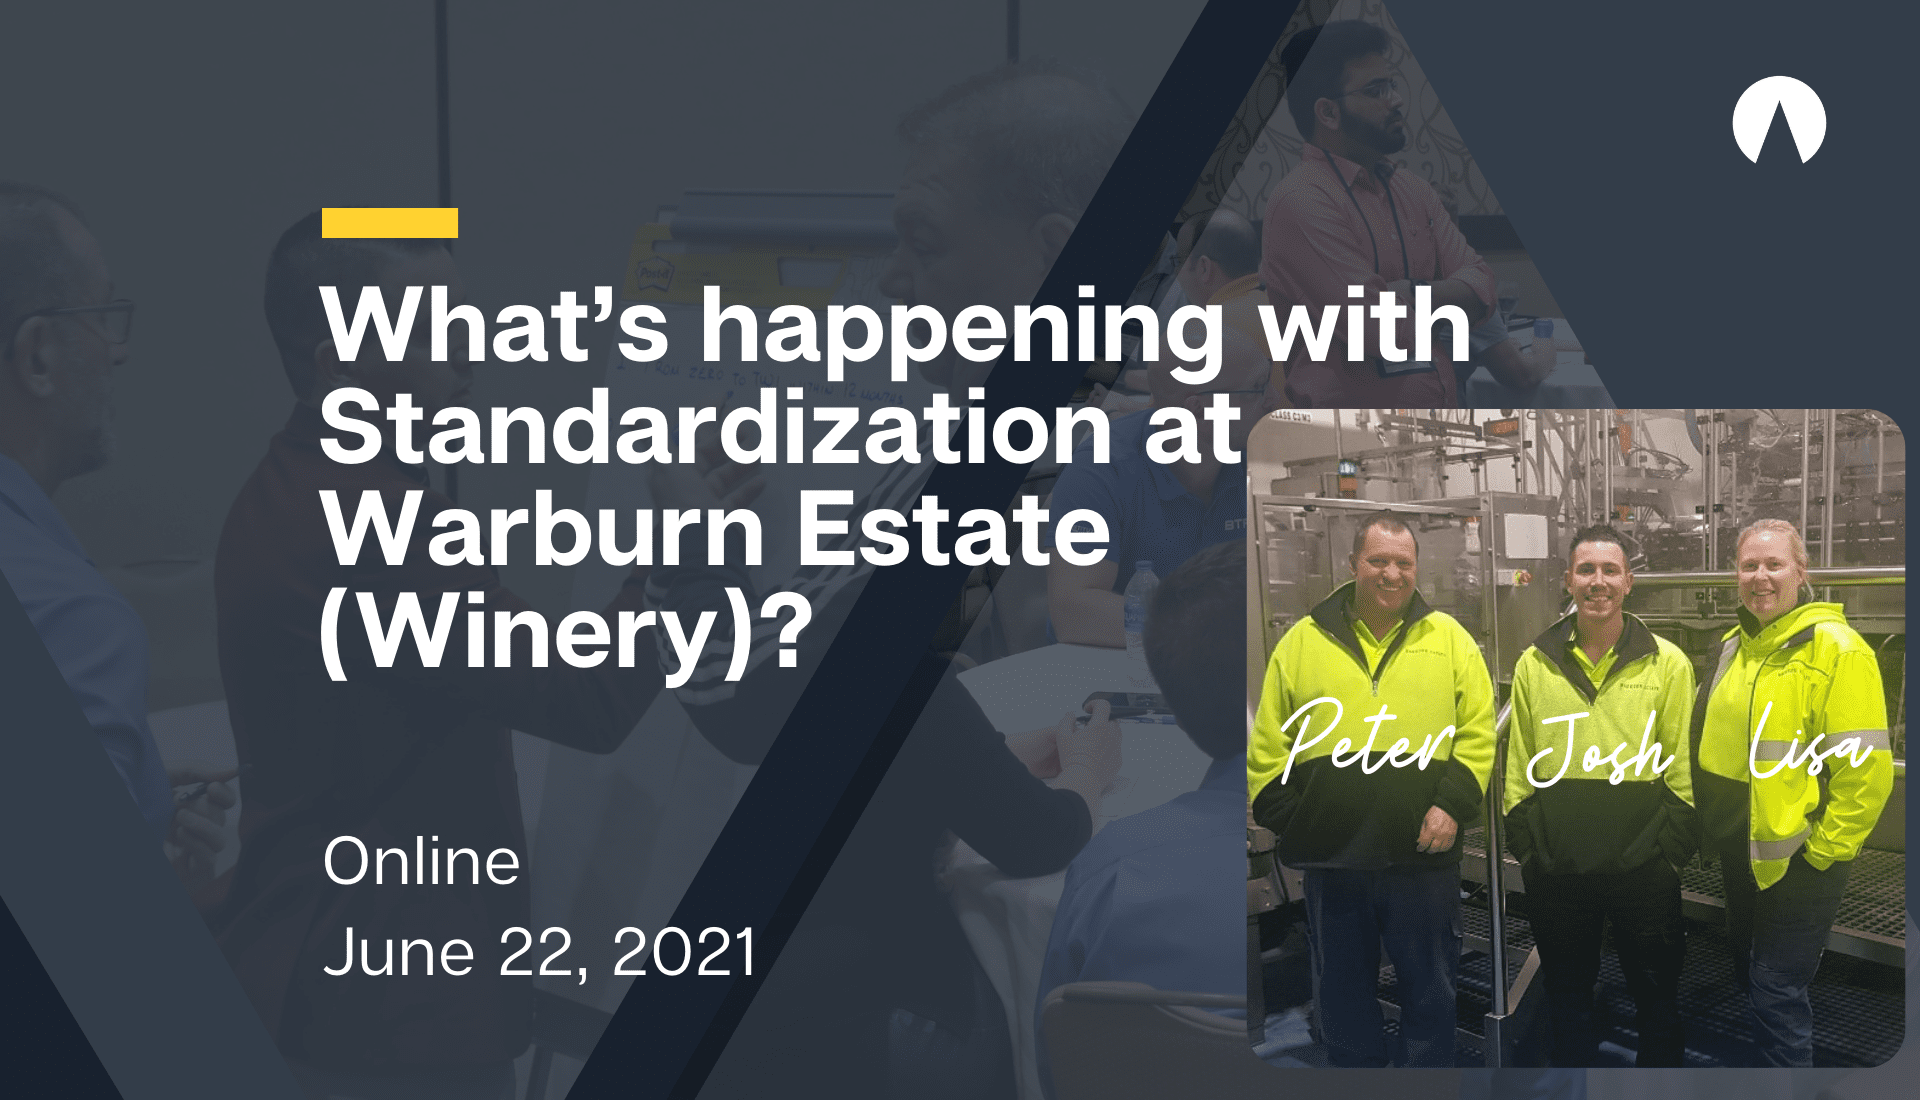 What's happening with Standardization at Warburn Estate (Winery)?